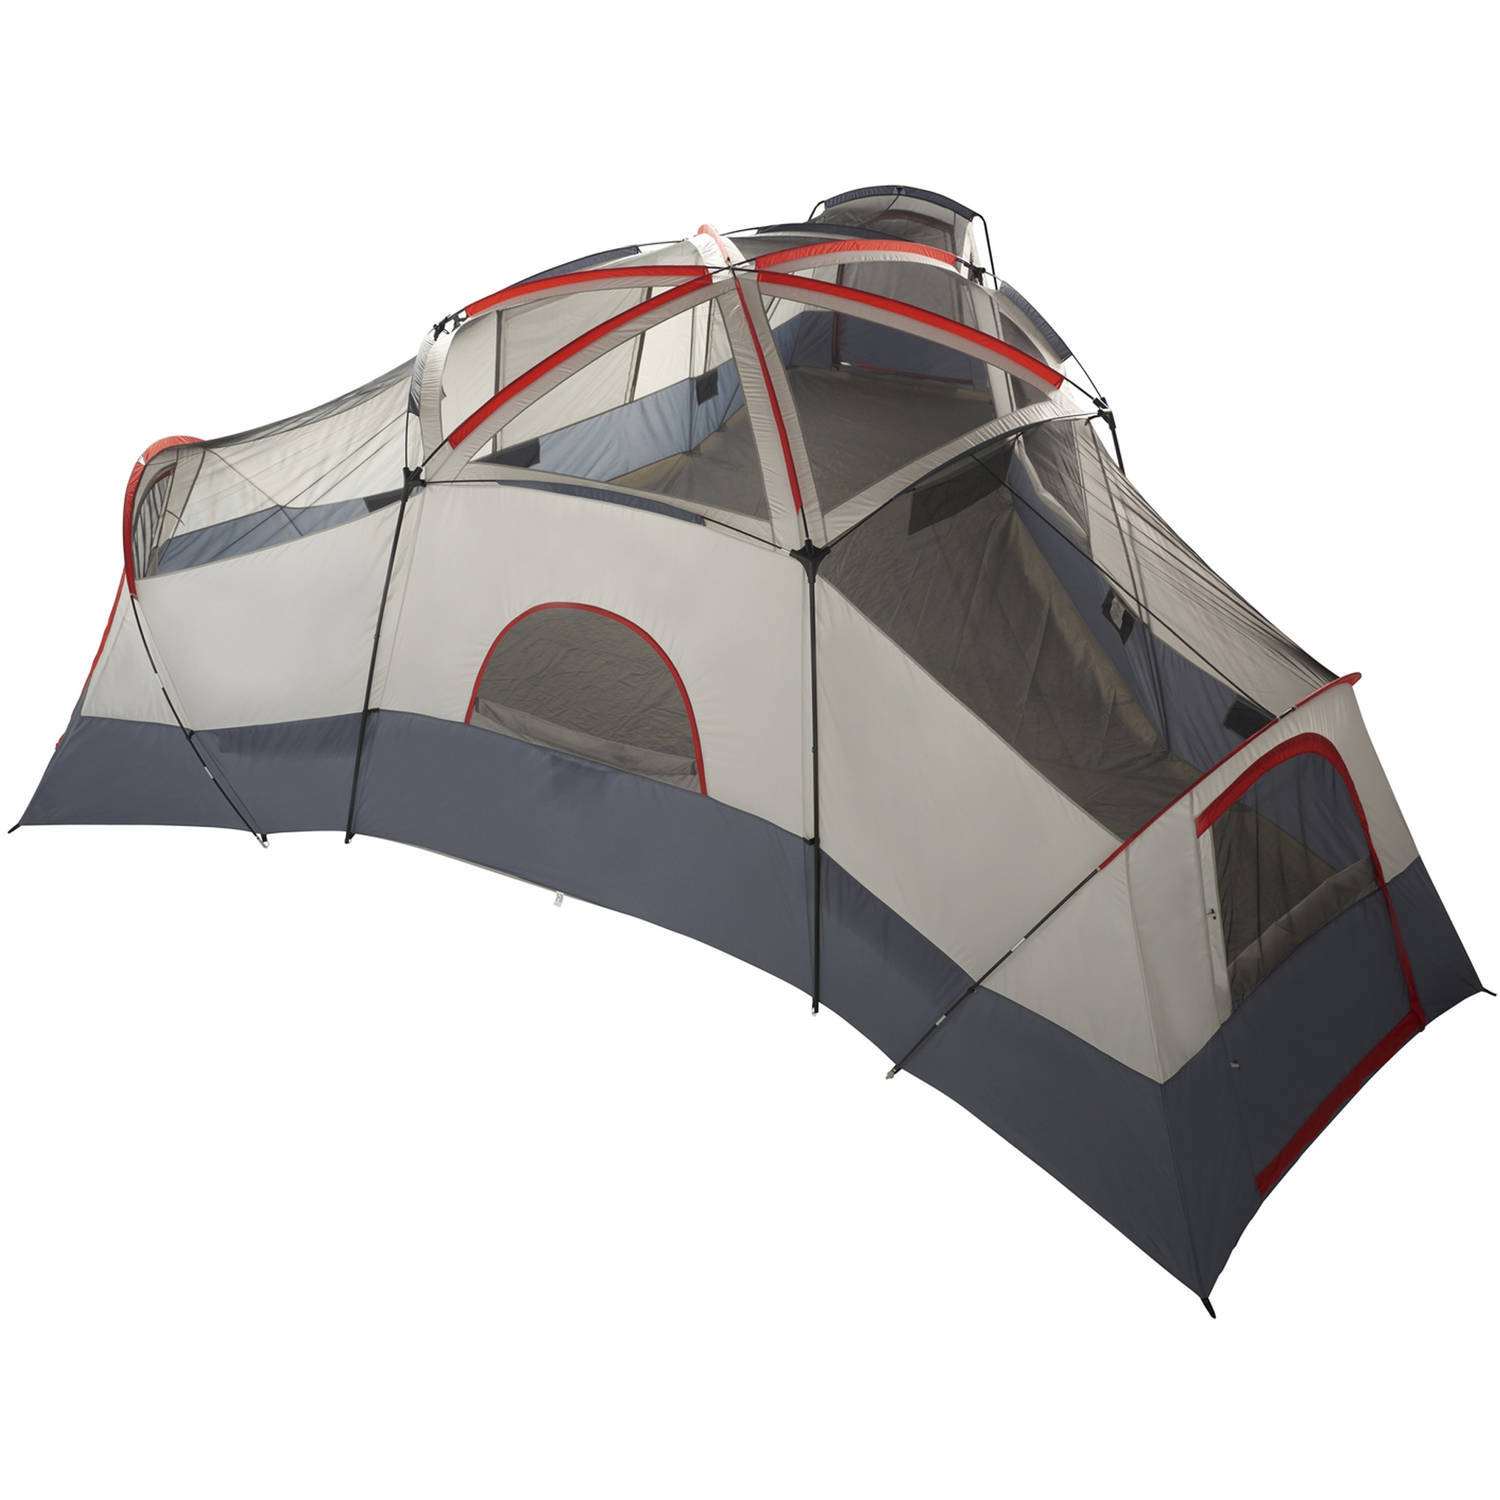 large camping tent outdoor picnic travel and 14 similar items